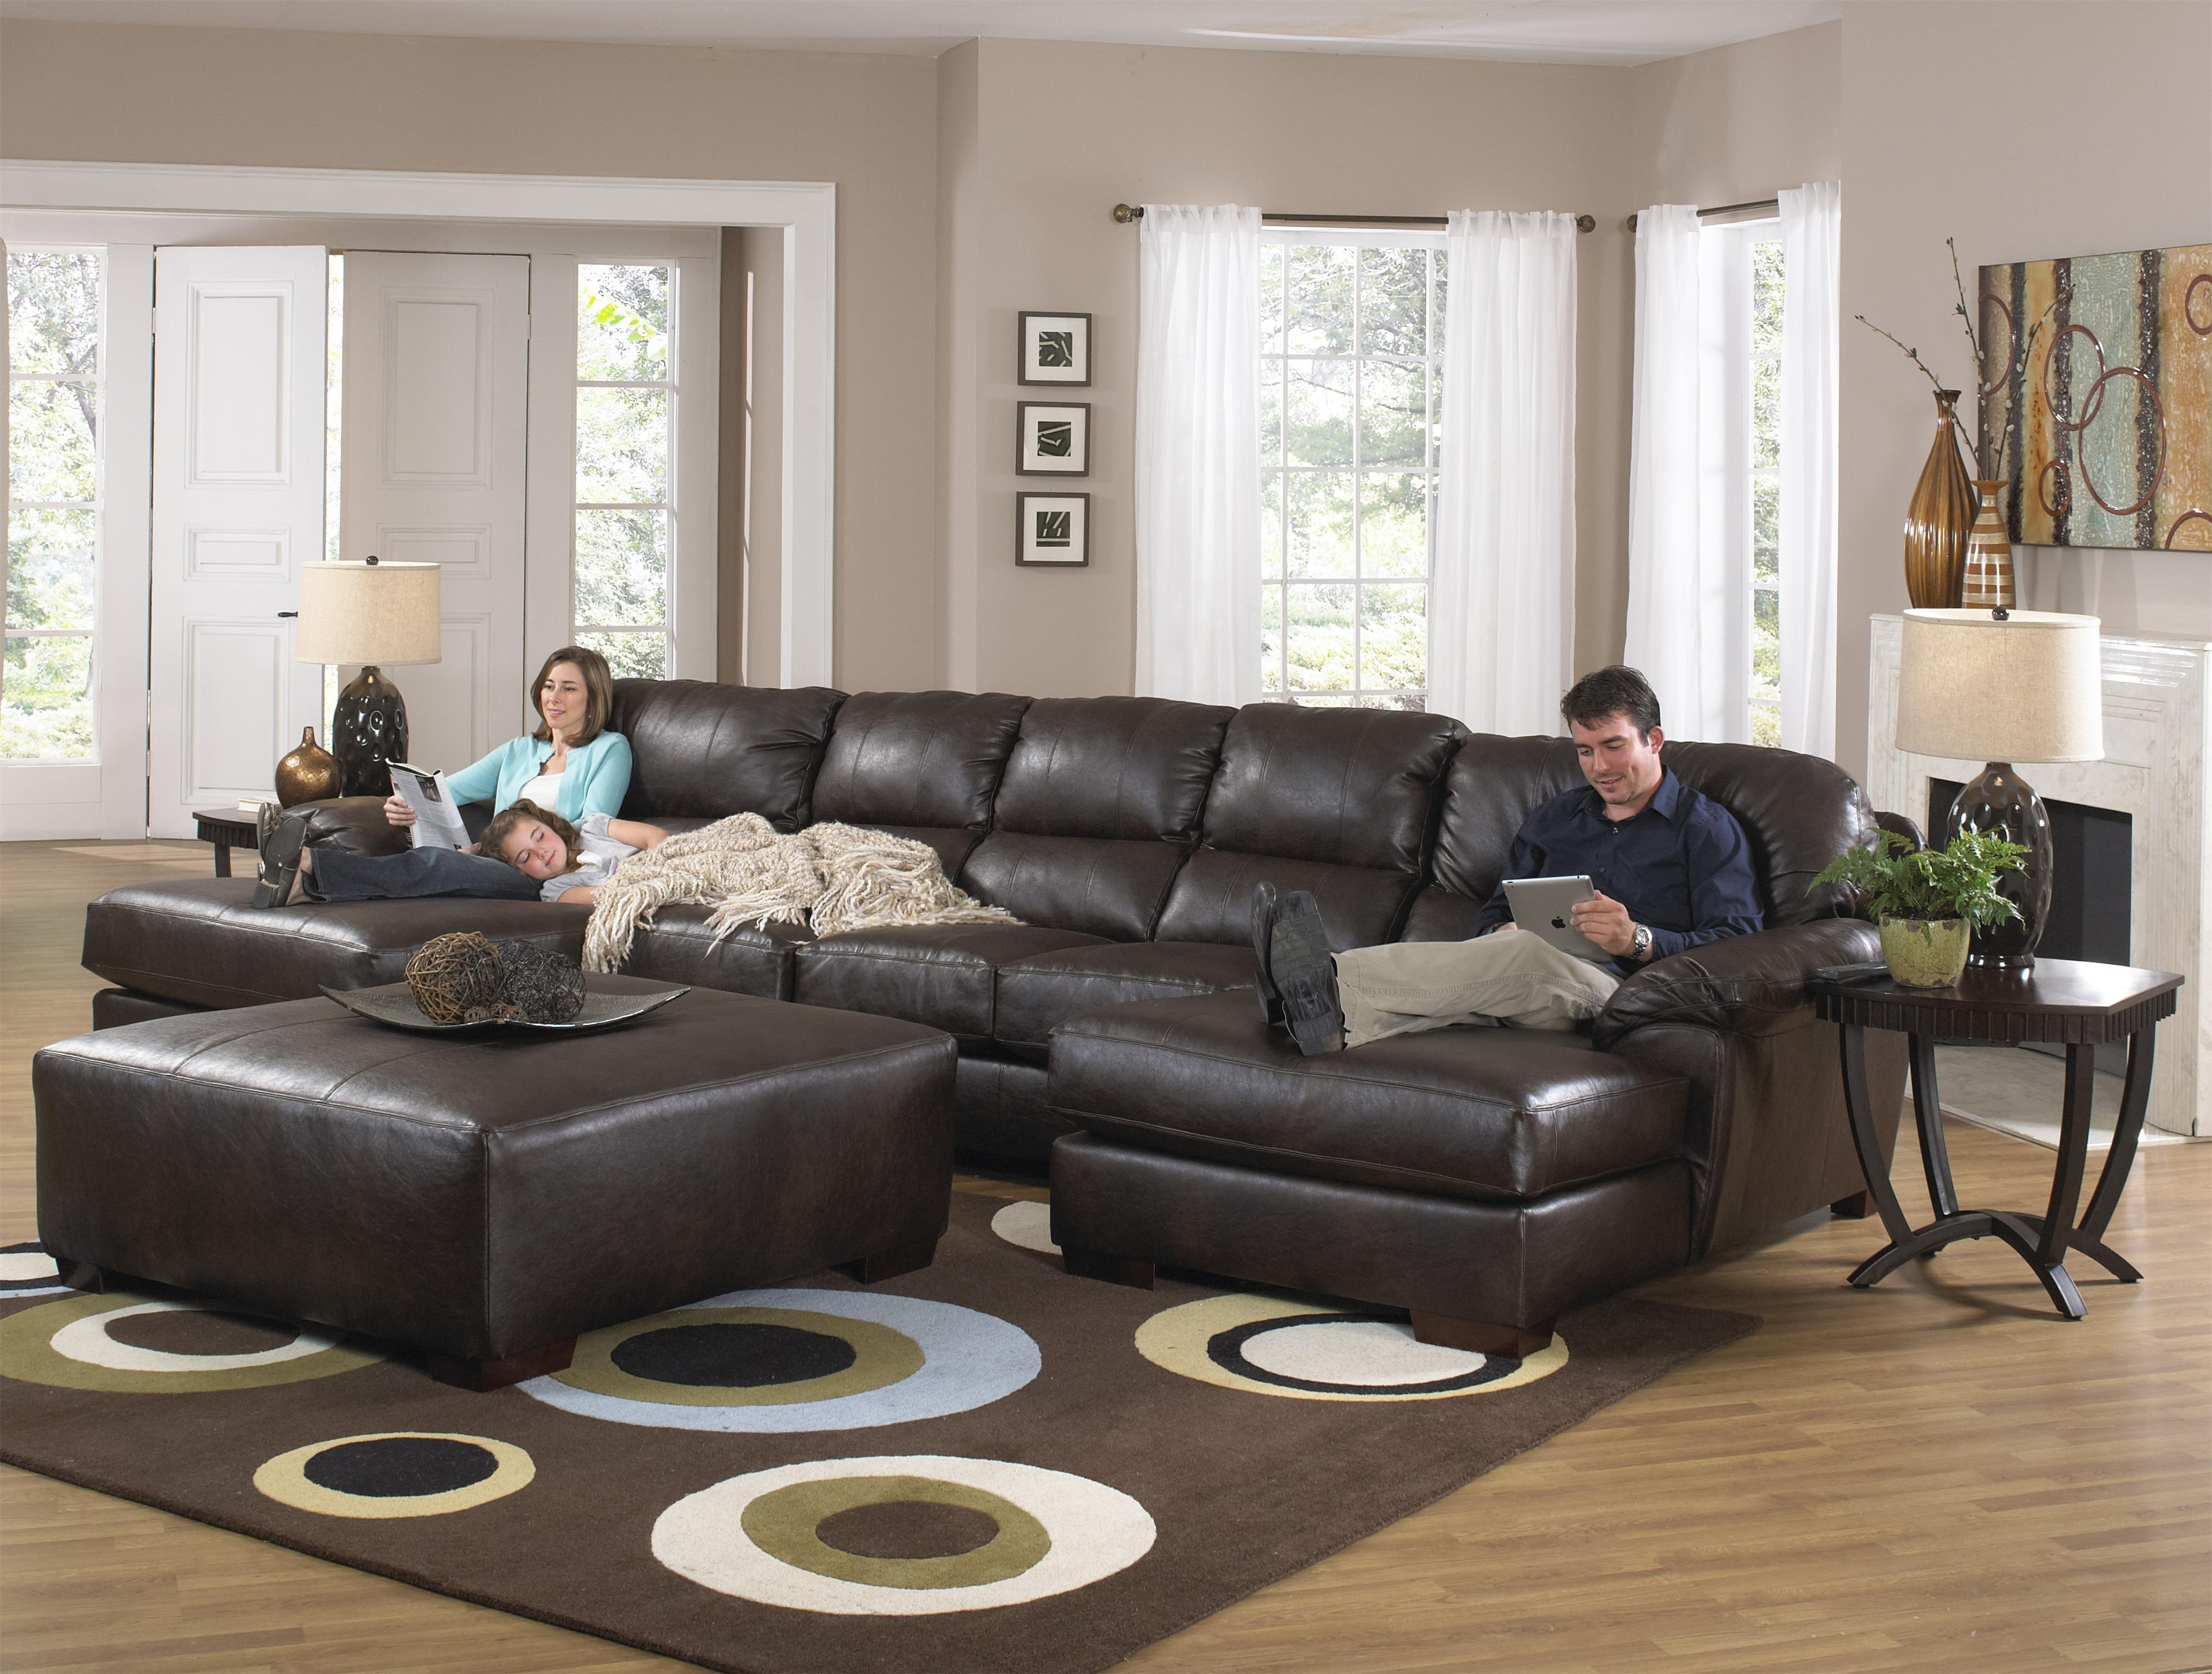 Large Sectional Sofa With Ottoman | Aifaresidency pertaining to Sofas With Large Ottoman (Image 6 of 10)